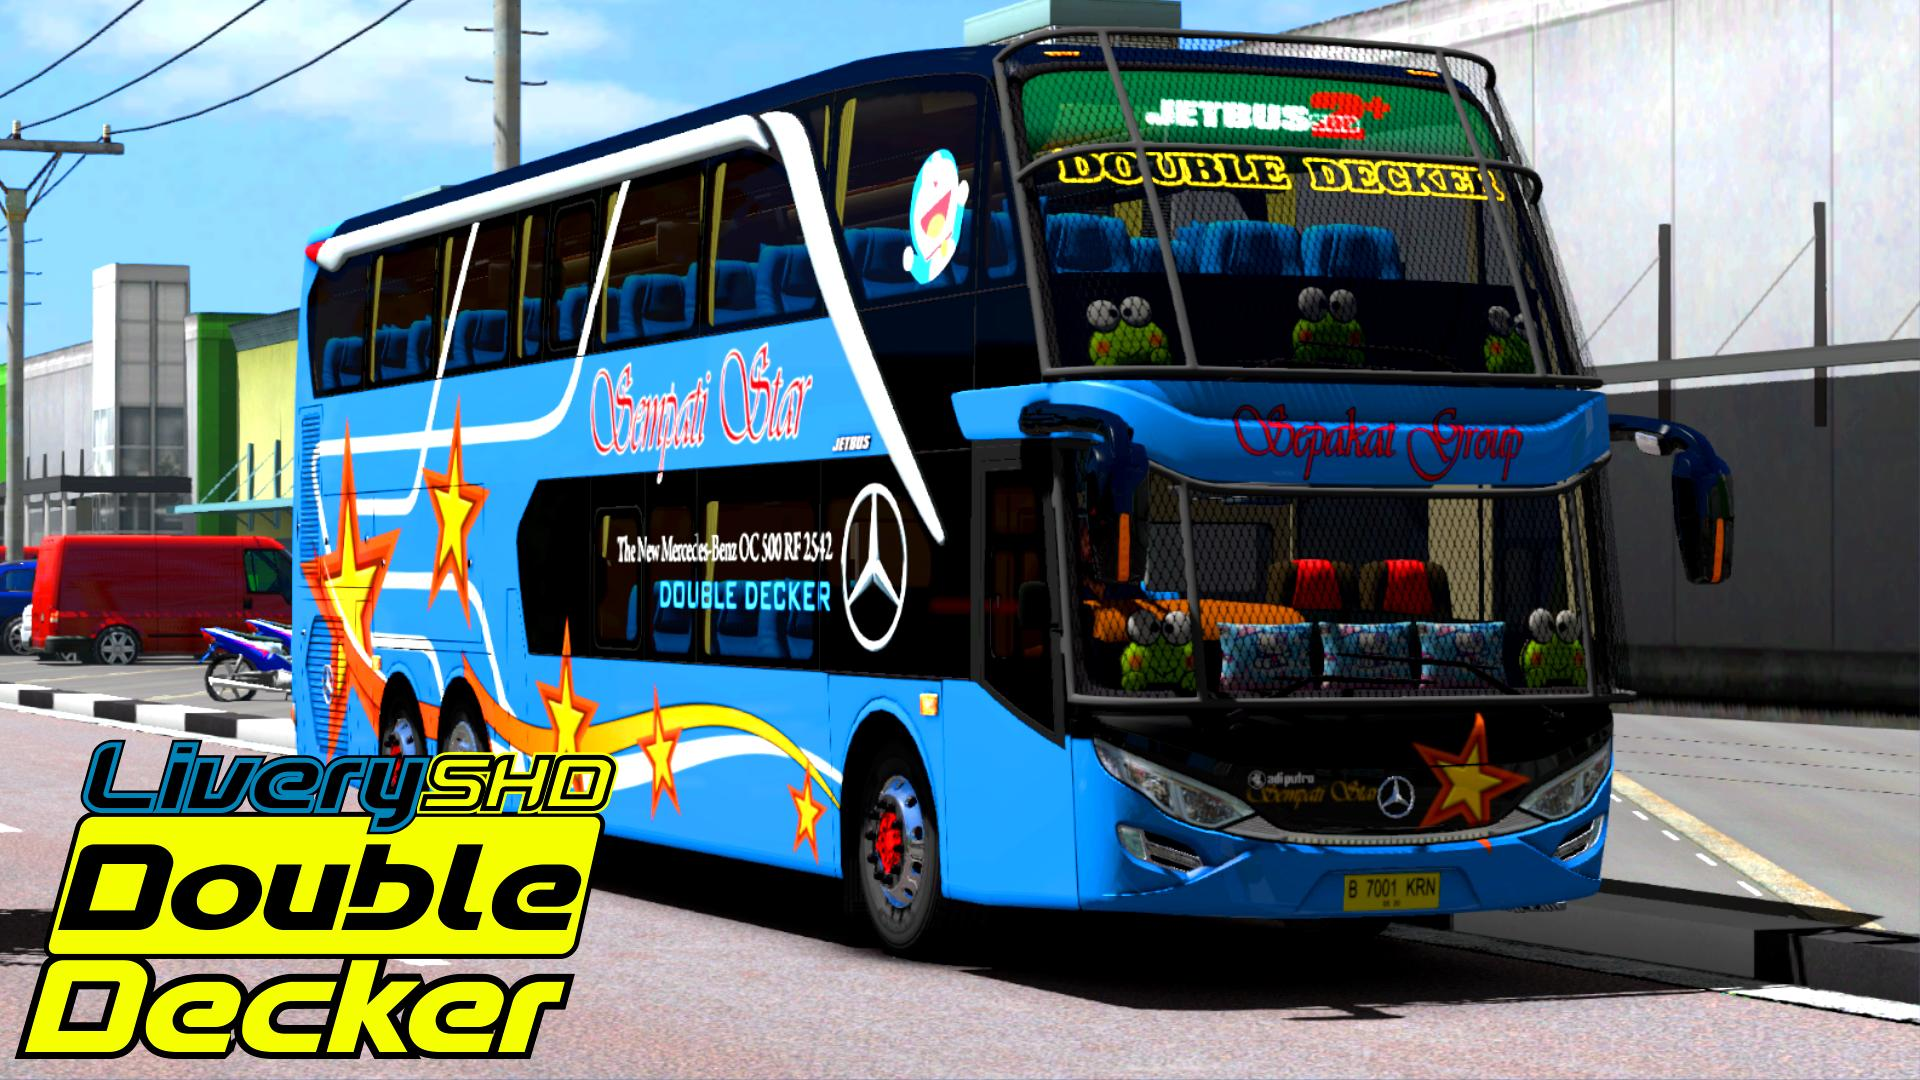 Livery Shd Double Decker For Android Apk Download